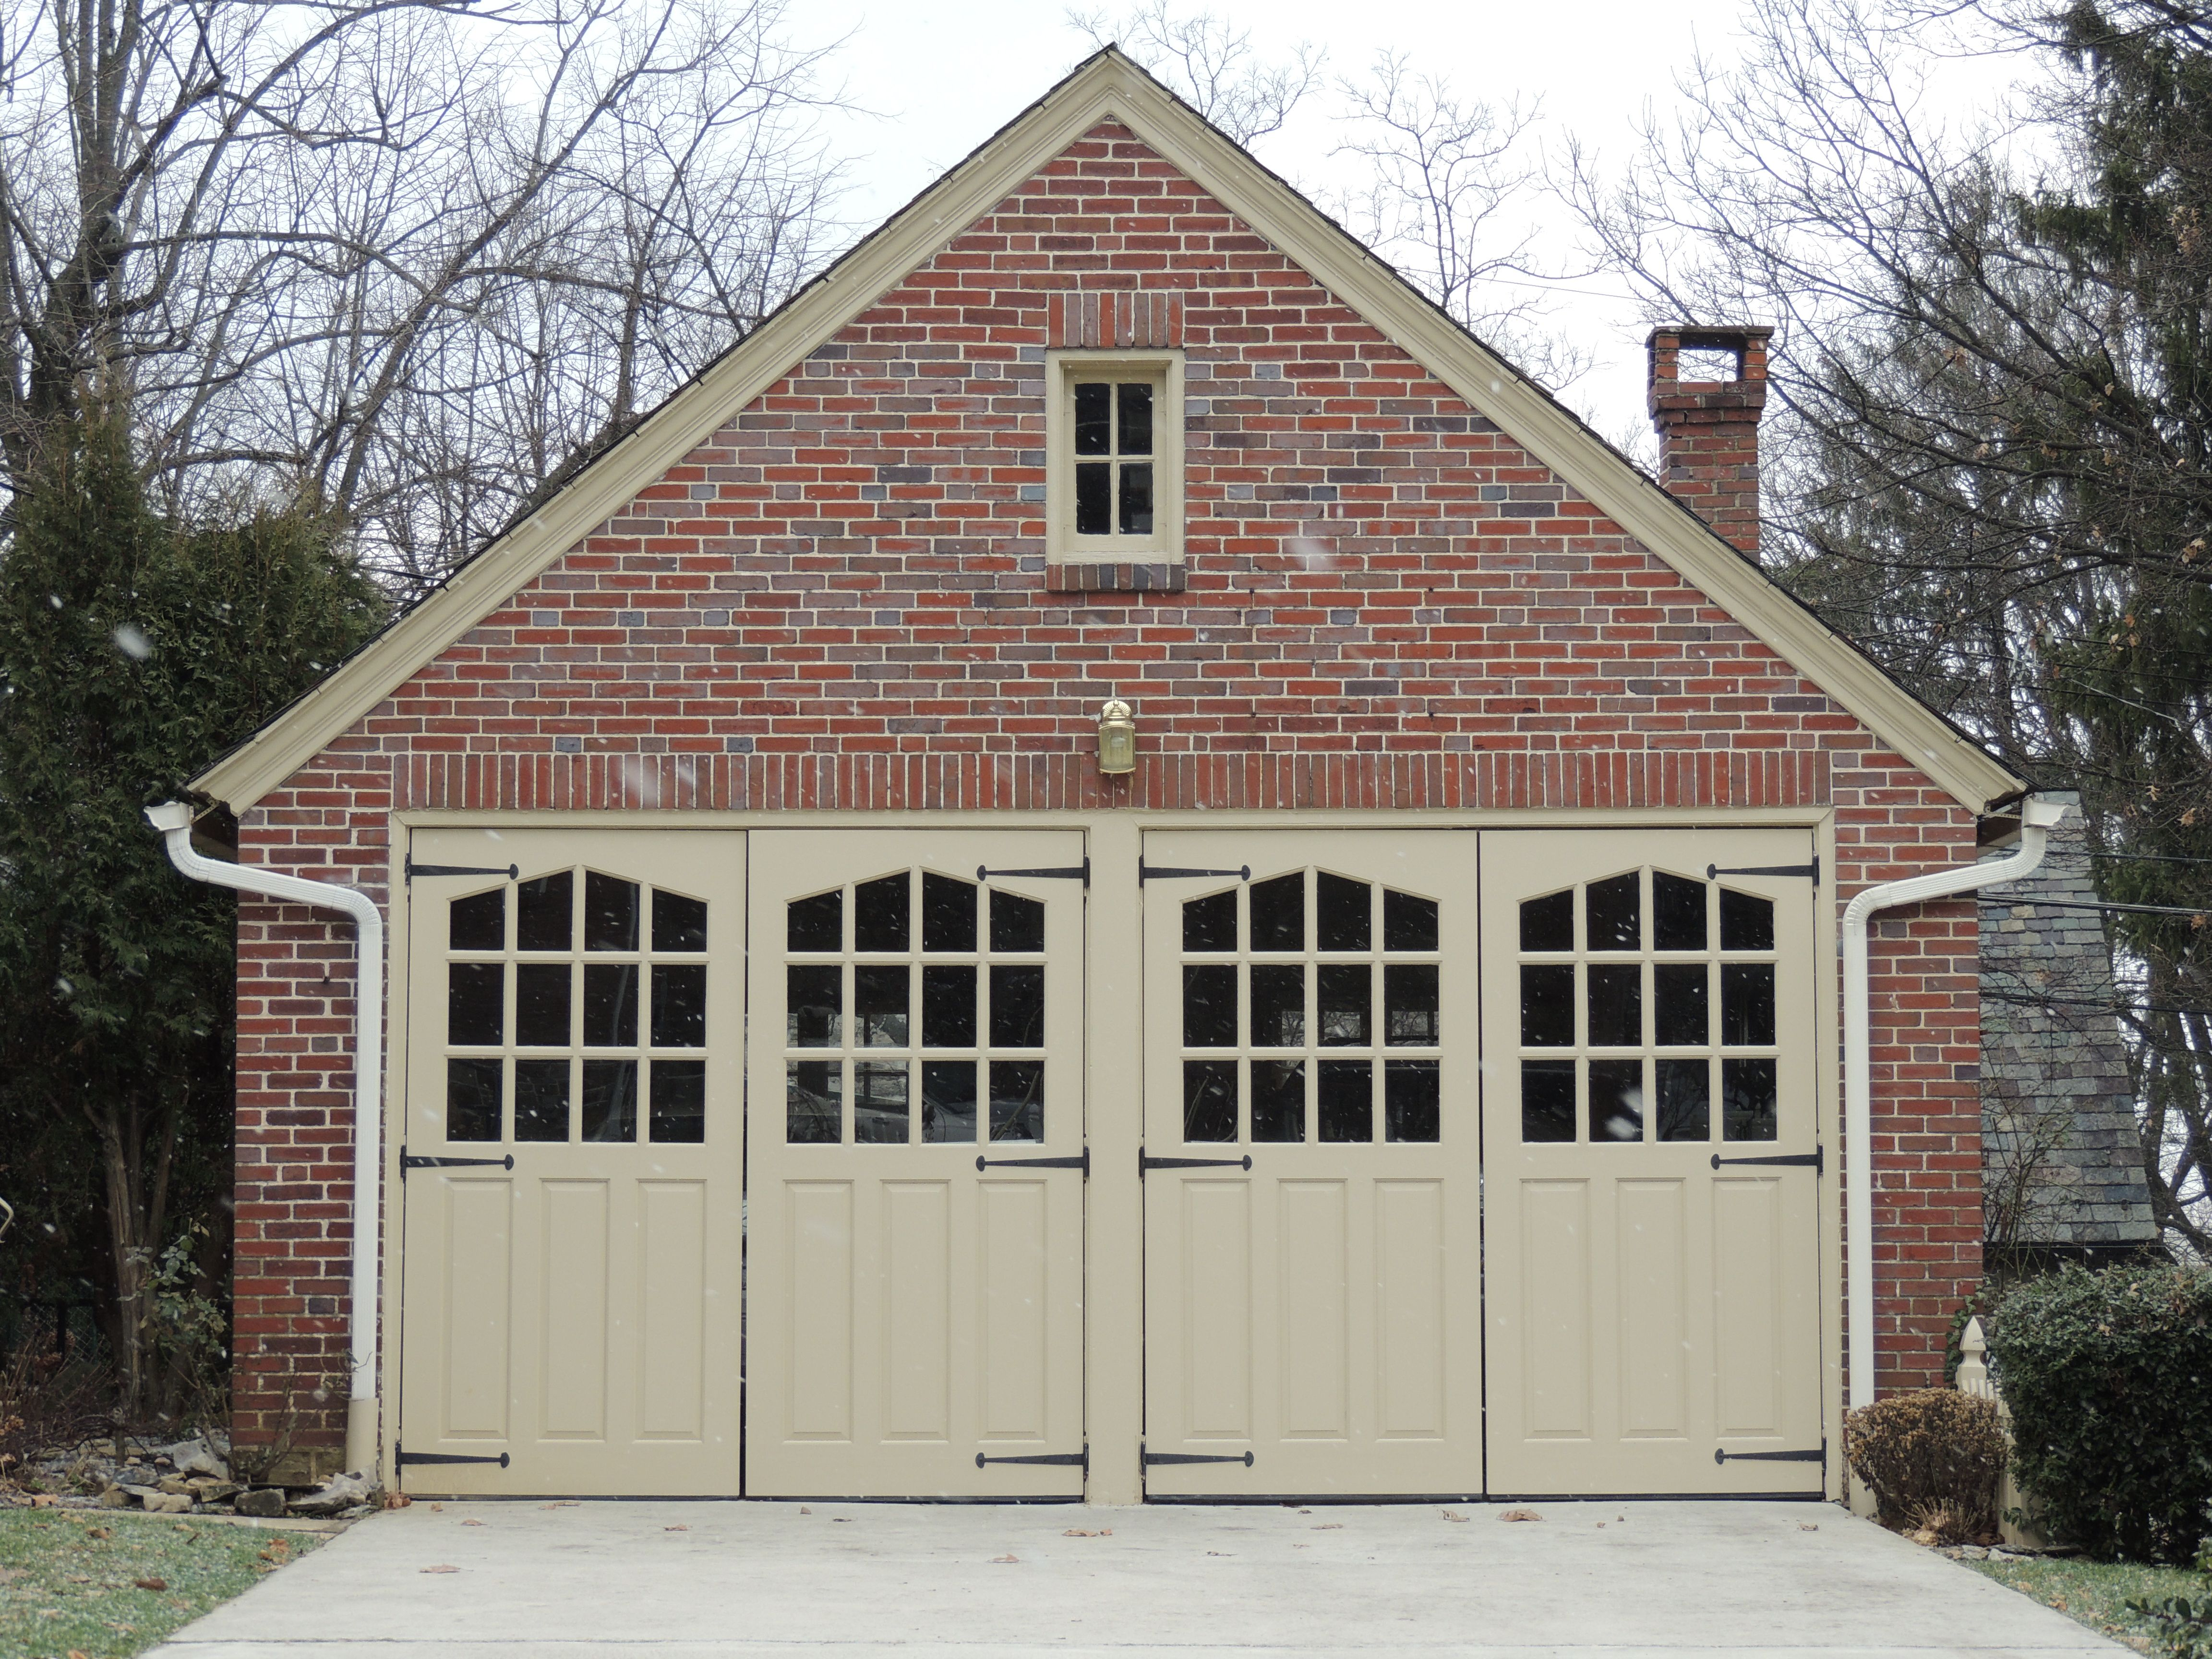 Hampden Heights Details In Garage Details Using The Golden Ratio 1 To 1 618 House Styles Outdoor Decor Outdoor Structures